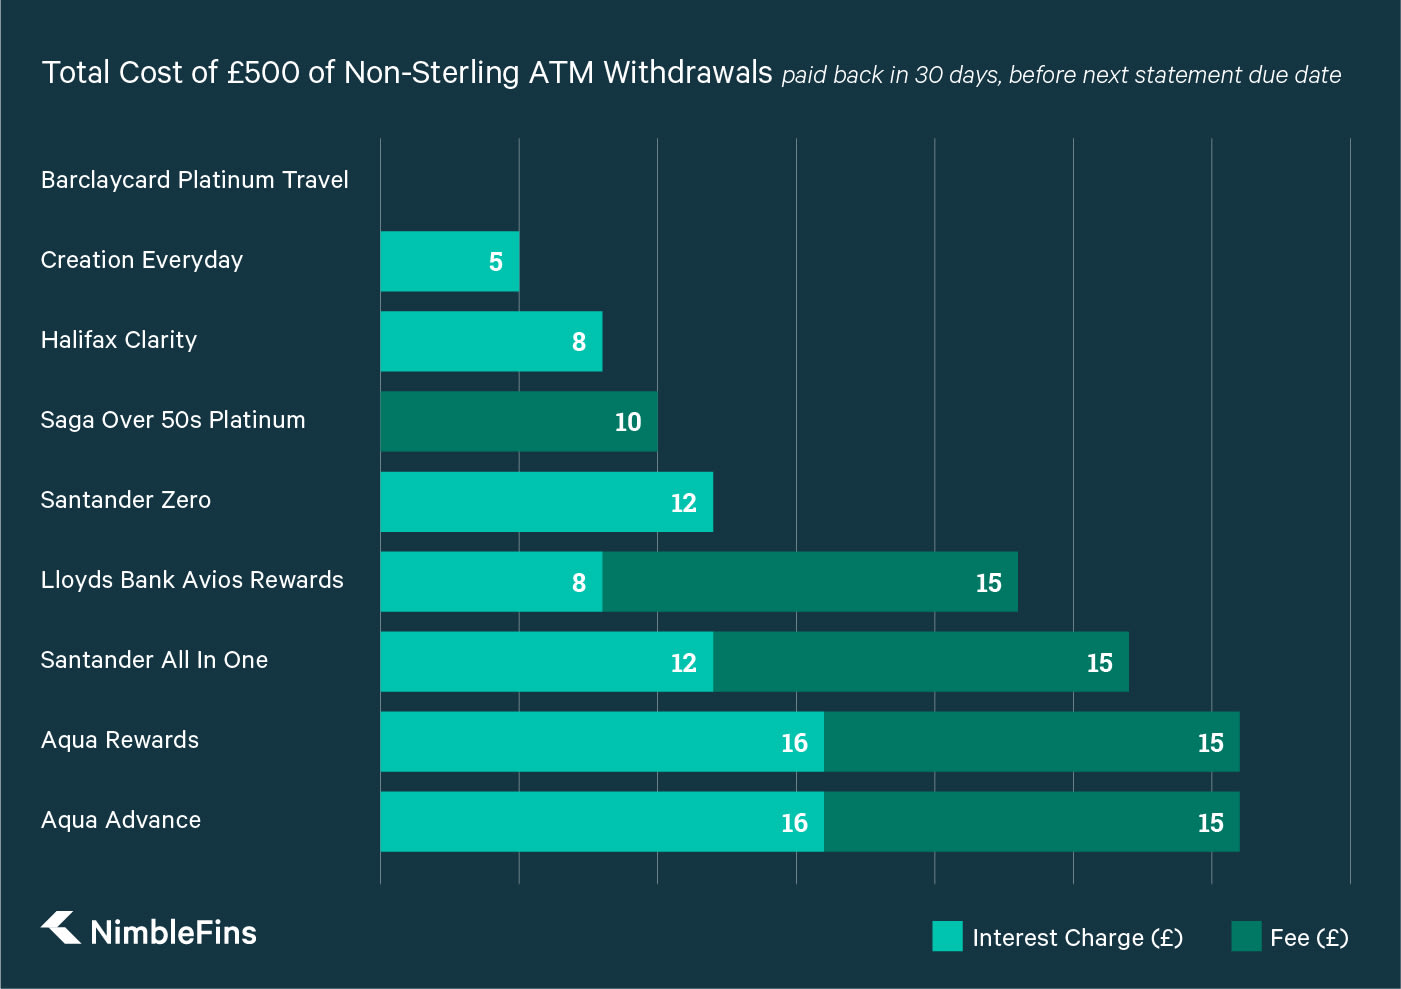 A graph comparing the costs, including non-sterling transaction fees and interest charges, of £500 worth of Foreign Currency Withdrawals across 9 of the Best Travel Cards